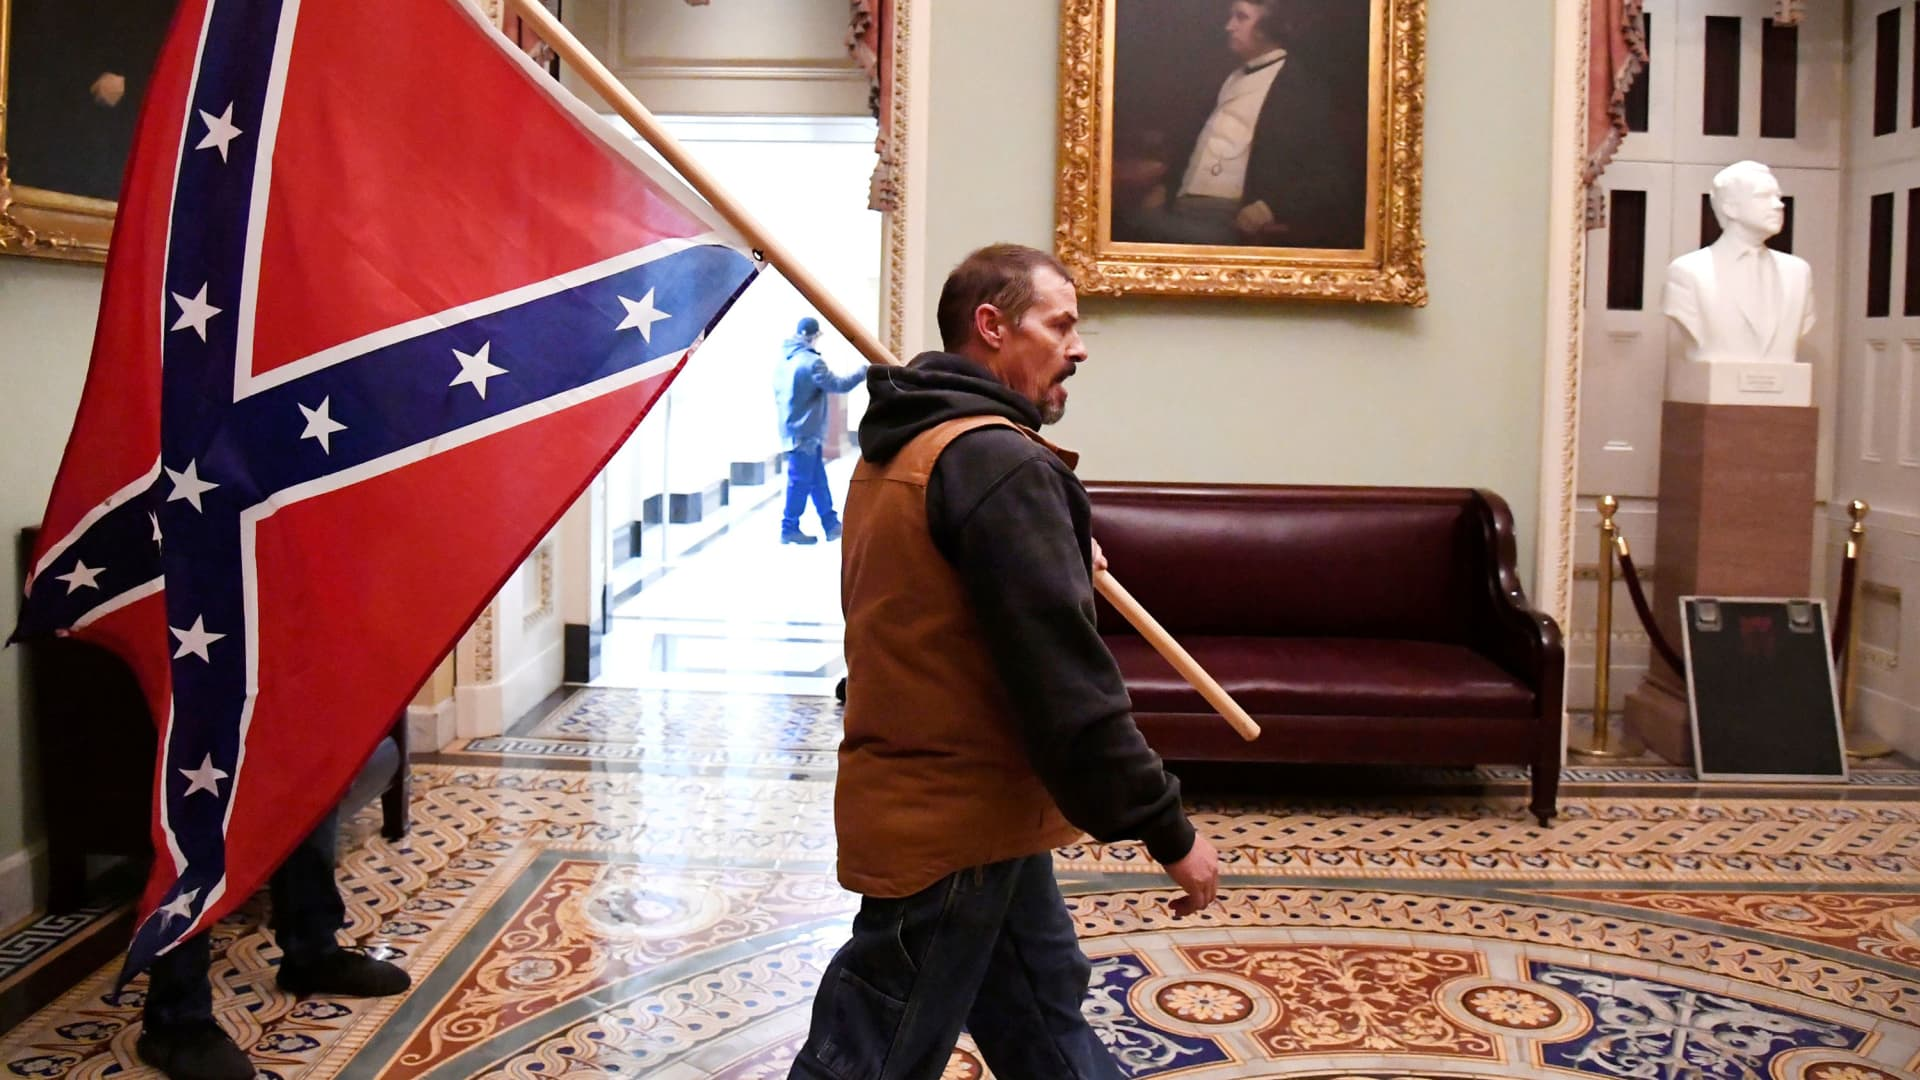 A supporter of President Donald Trump carries a Conferderate battle flag on the second floor of the U.S. Capitol near the entrance to the Senate after breaching security defenses, in Washington, January 6, 2021.